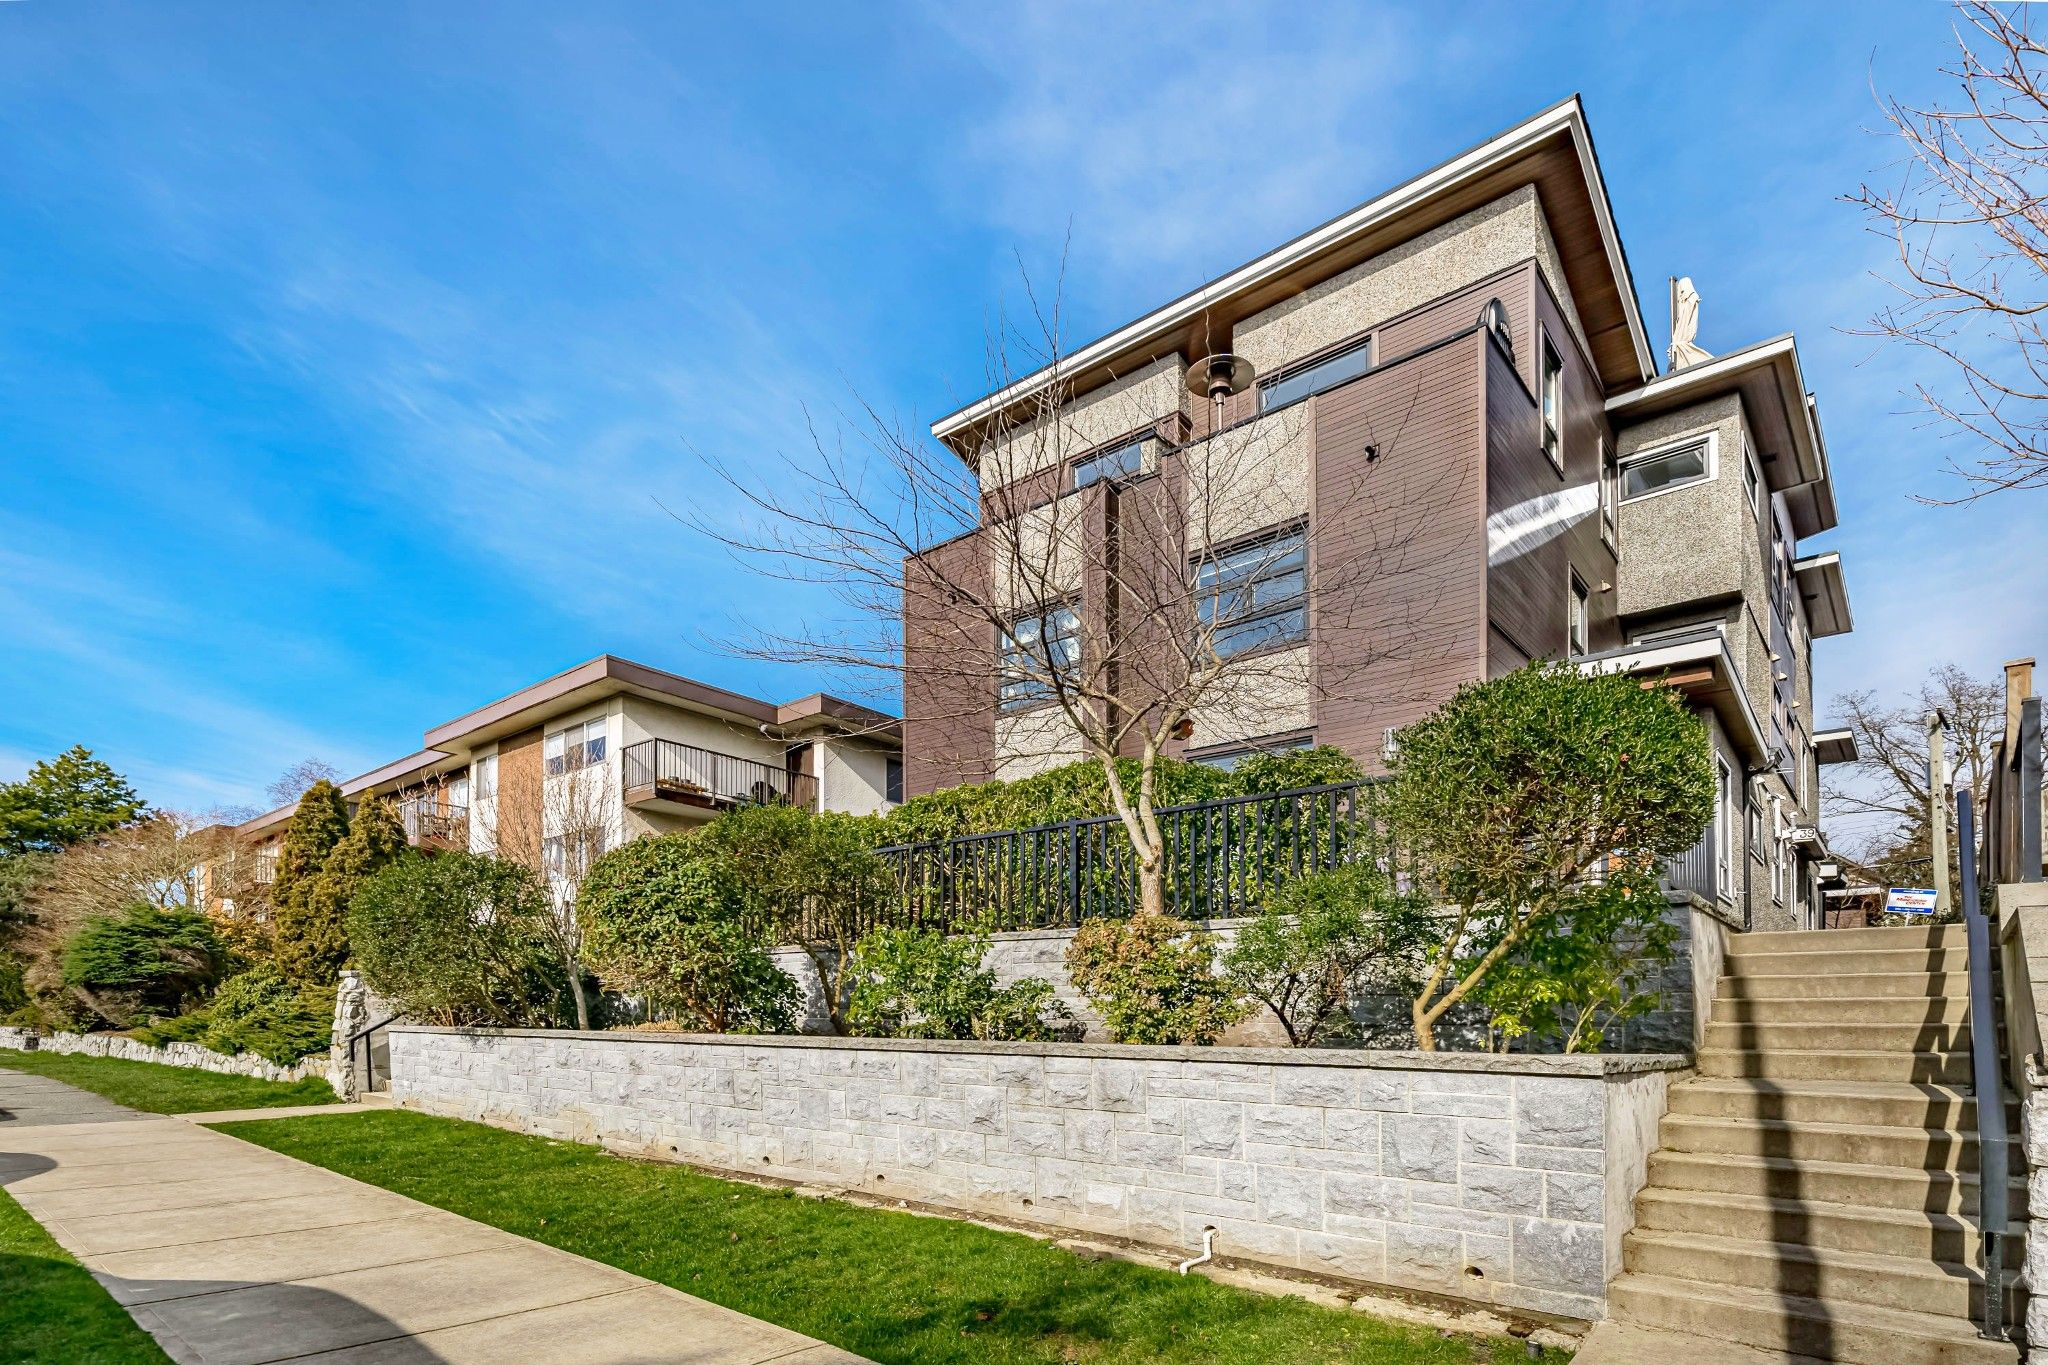 """Main Photo: 39 E 13TH Avenue in Vancouver: Mount Pleasant VE Townhouse for sale in """"Mount Pleasant"""" (Vancouver East)  : MLS®# R2439873"""